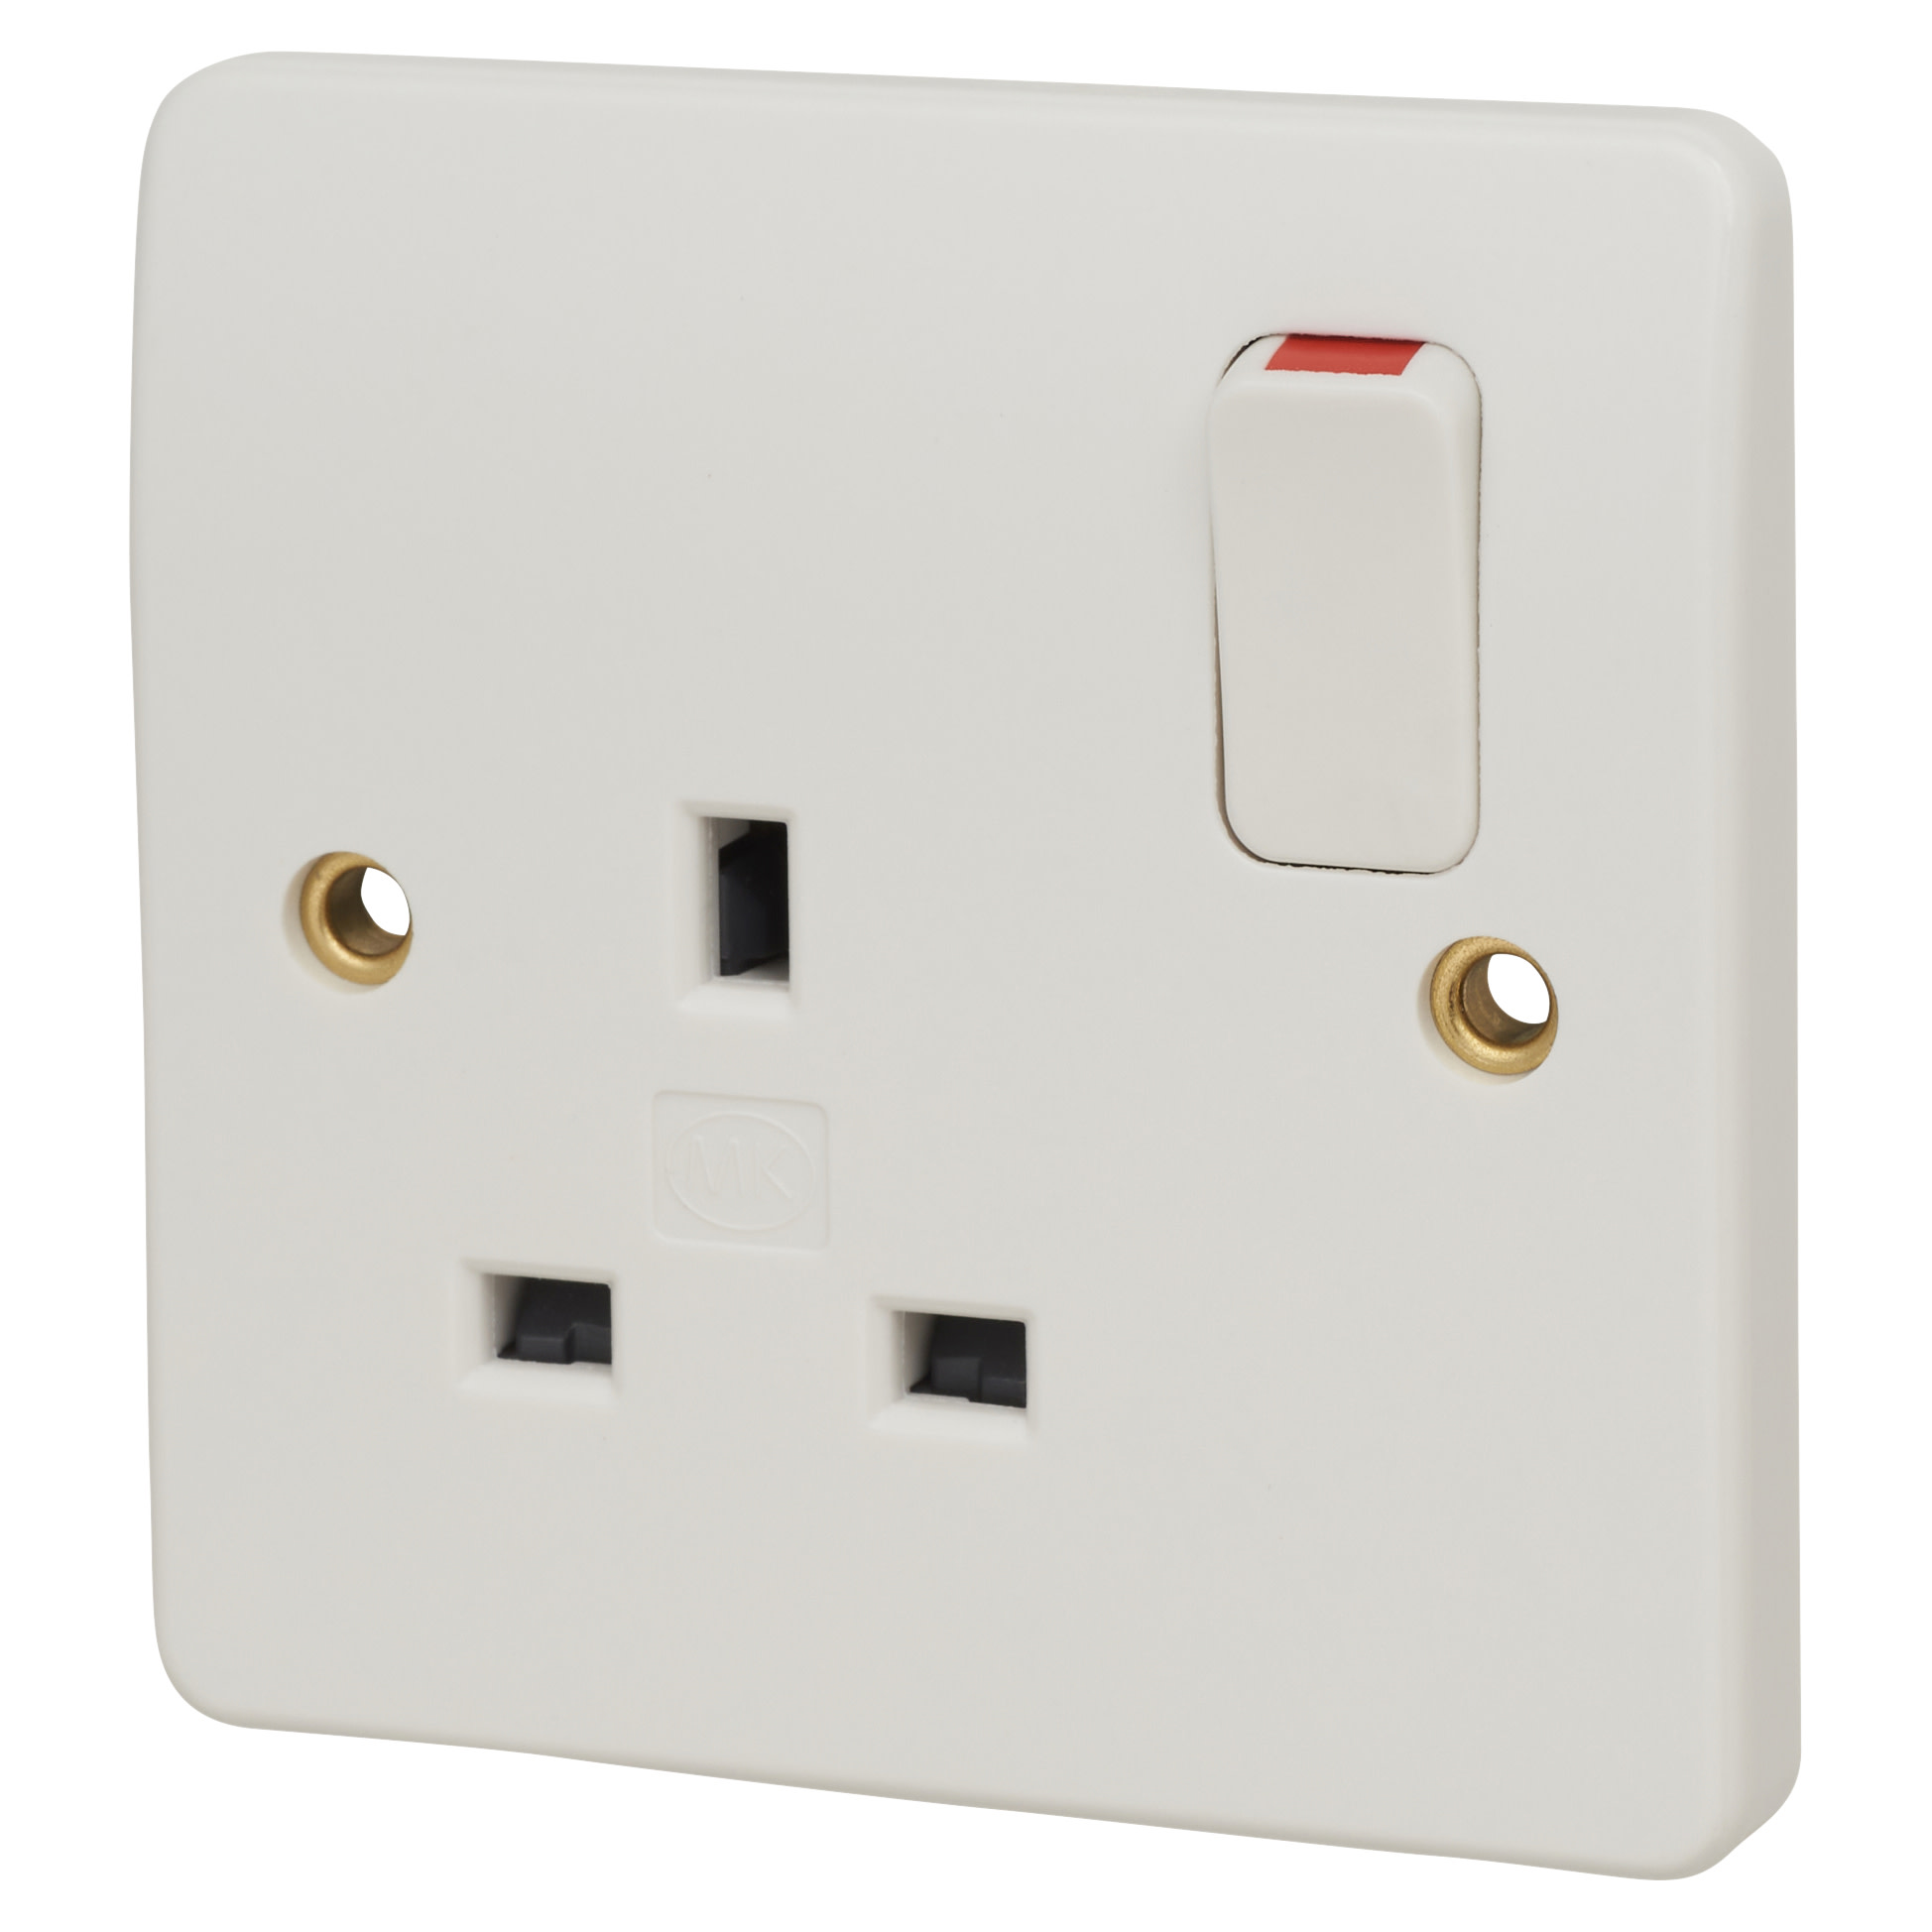 MK Logic Plus 13A 1 Gang Double Pole Switched Socket - White)